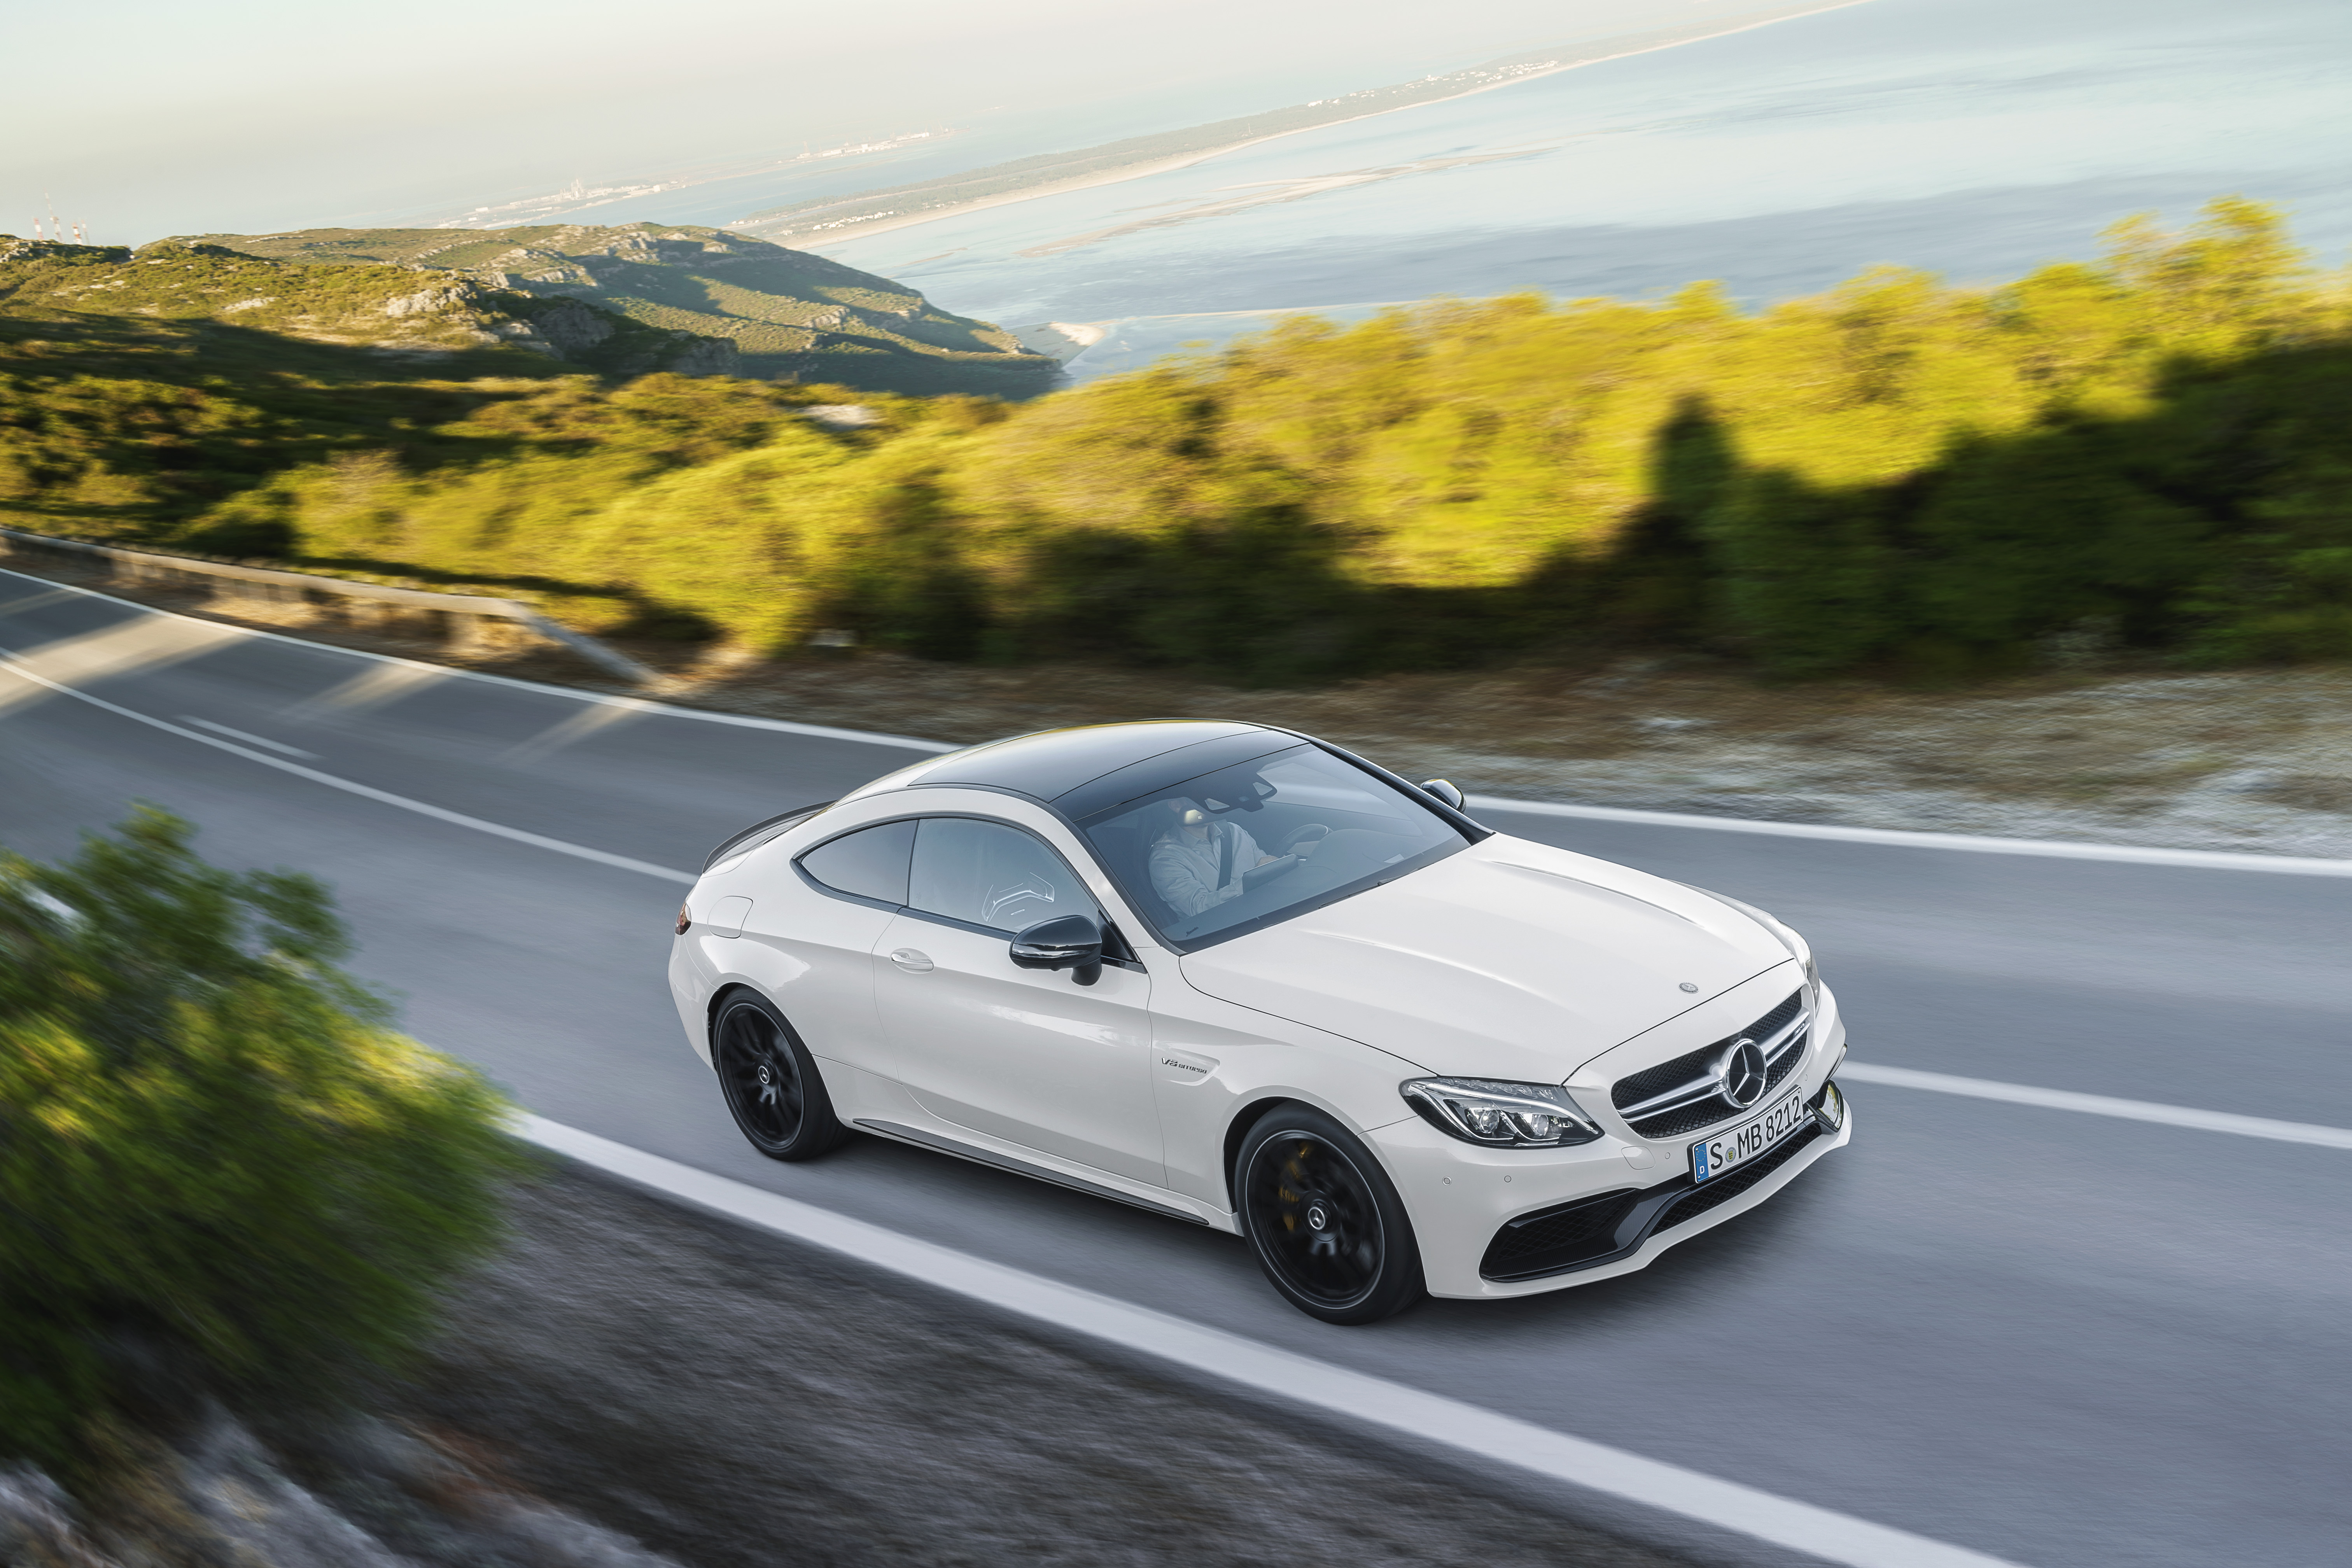 https://s1.cdn.autoevolution.com/images/news/mercedes-amg-c63-coupe-is-here-and-it-s-the-sportiest-c-class-ever-also-fabulous-99032_1.jpg